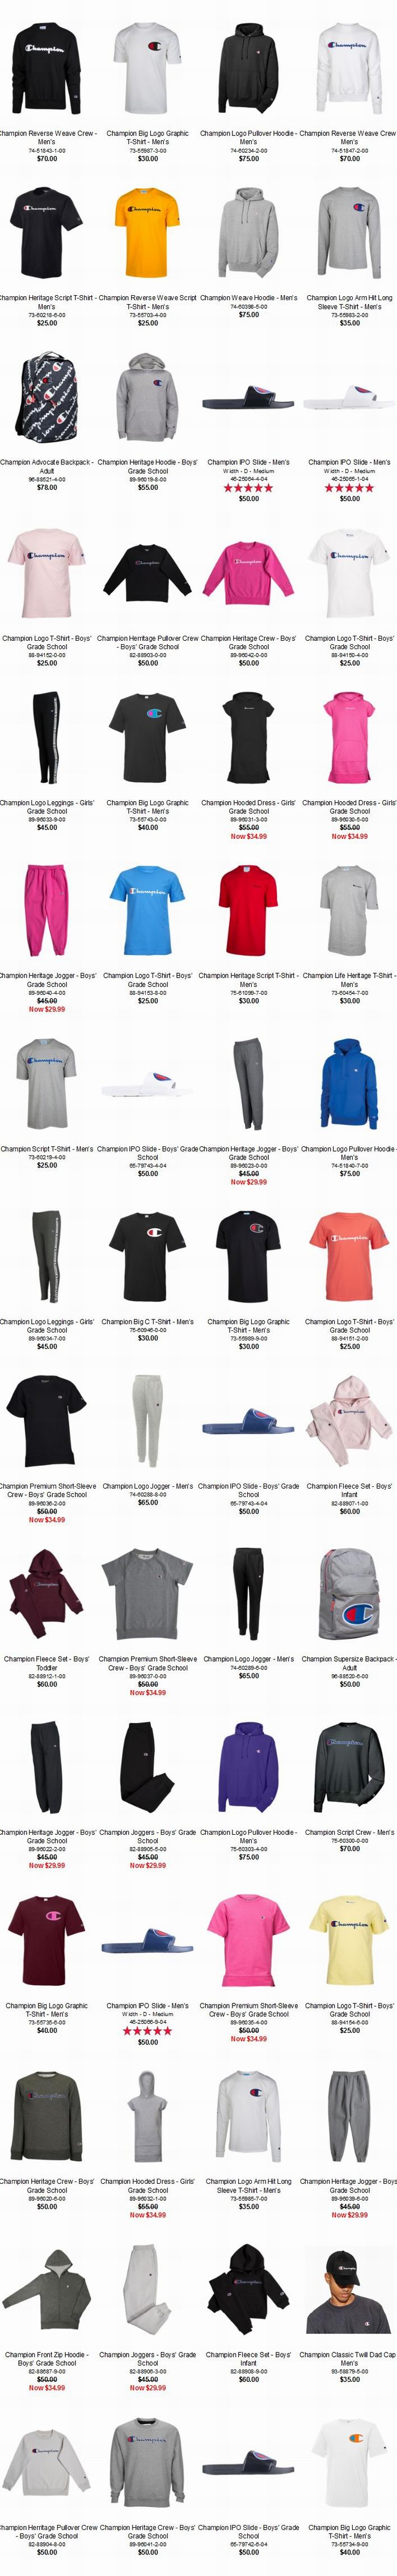 d0e57ae2 Champion T Shirts Foot Locker